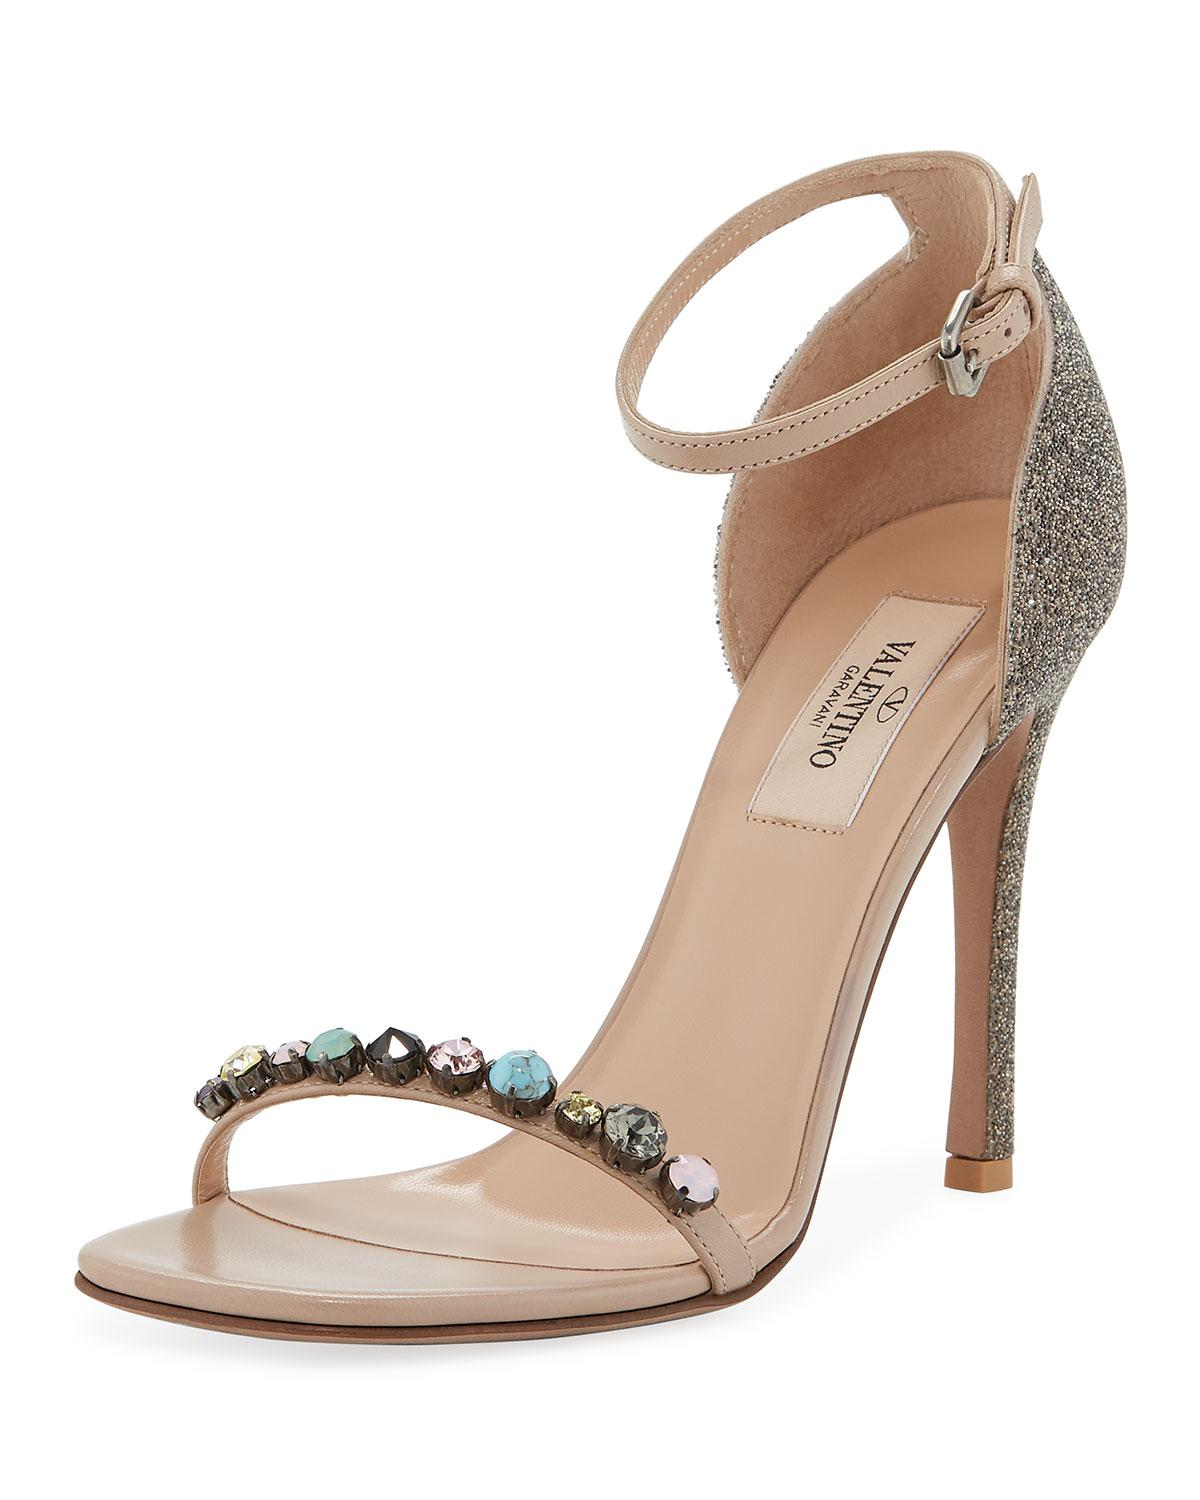 694ac0d1affde Lyst - Valentino Jeweled Leather Ankle-strap Sandals in Natural